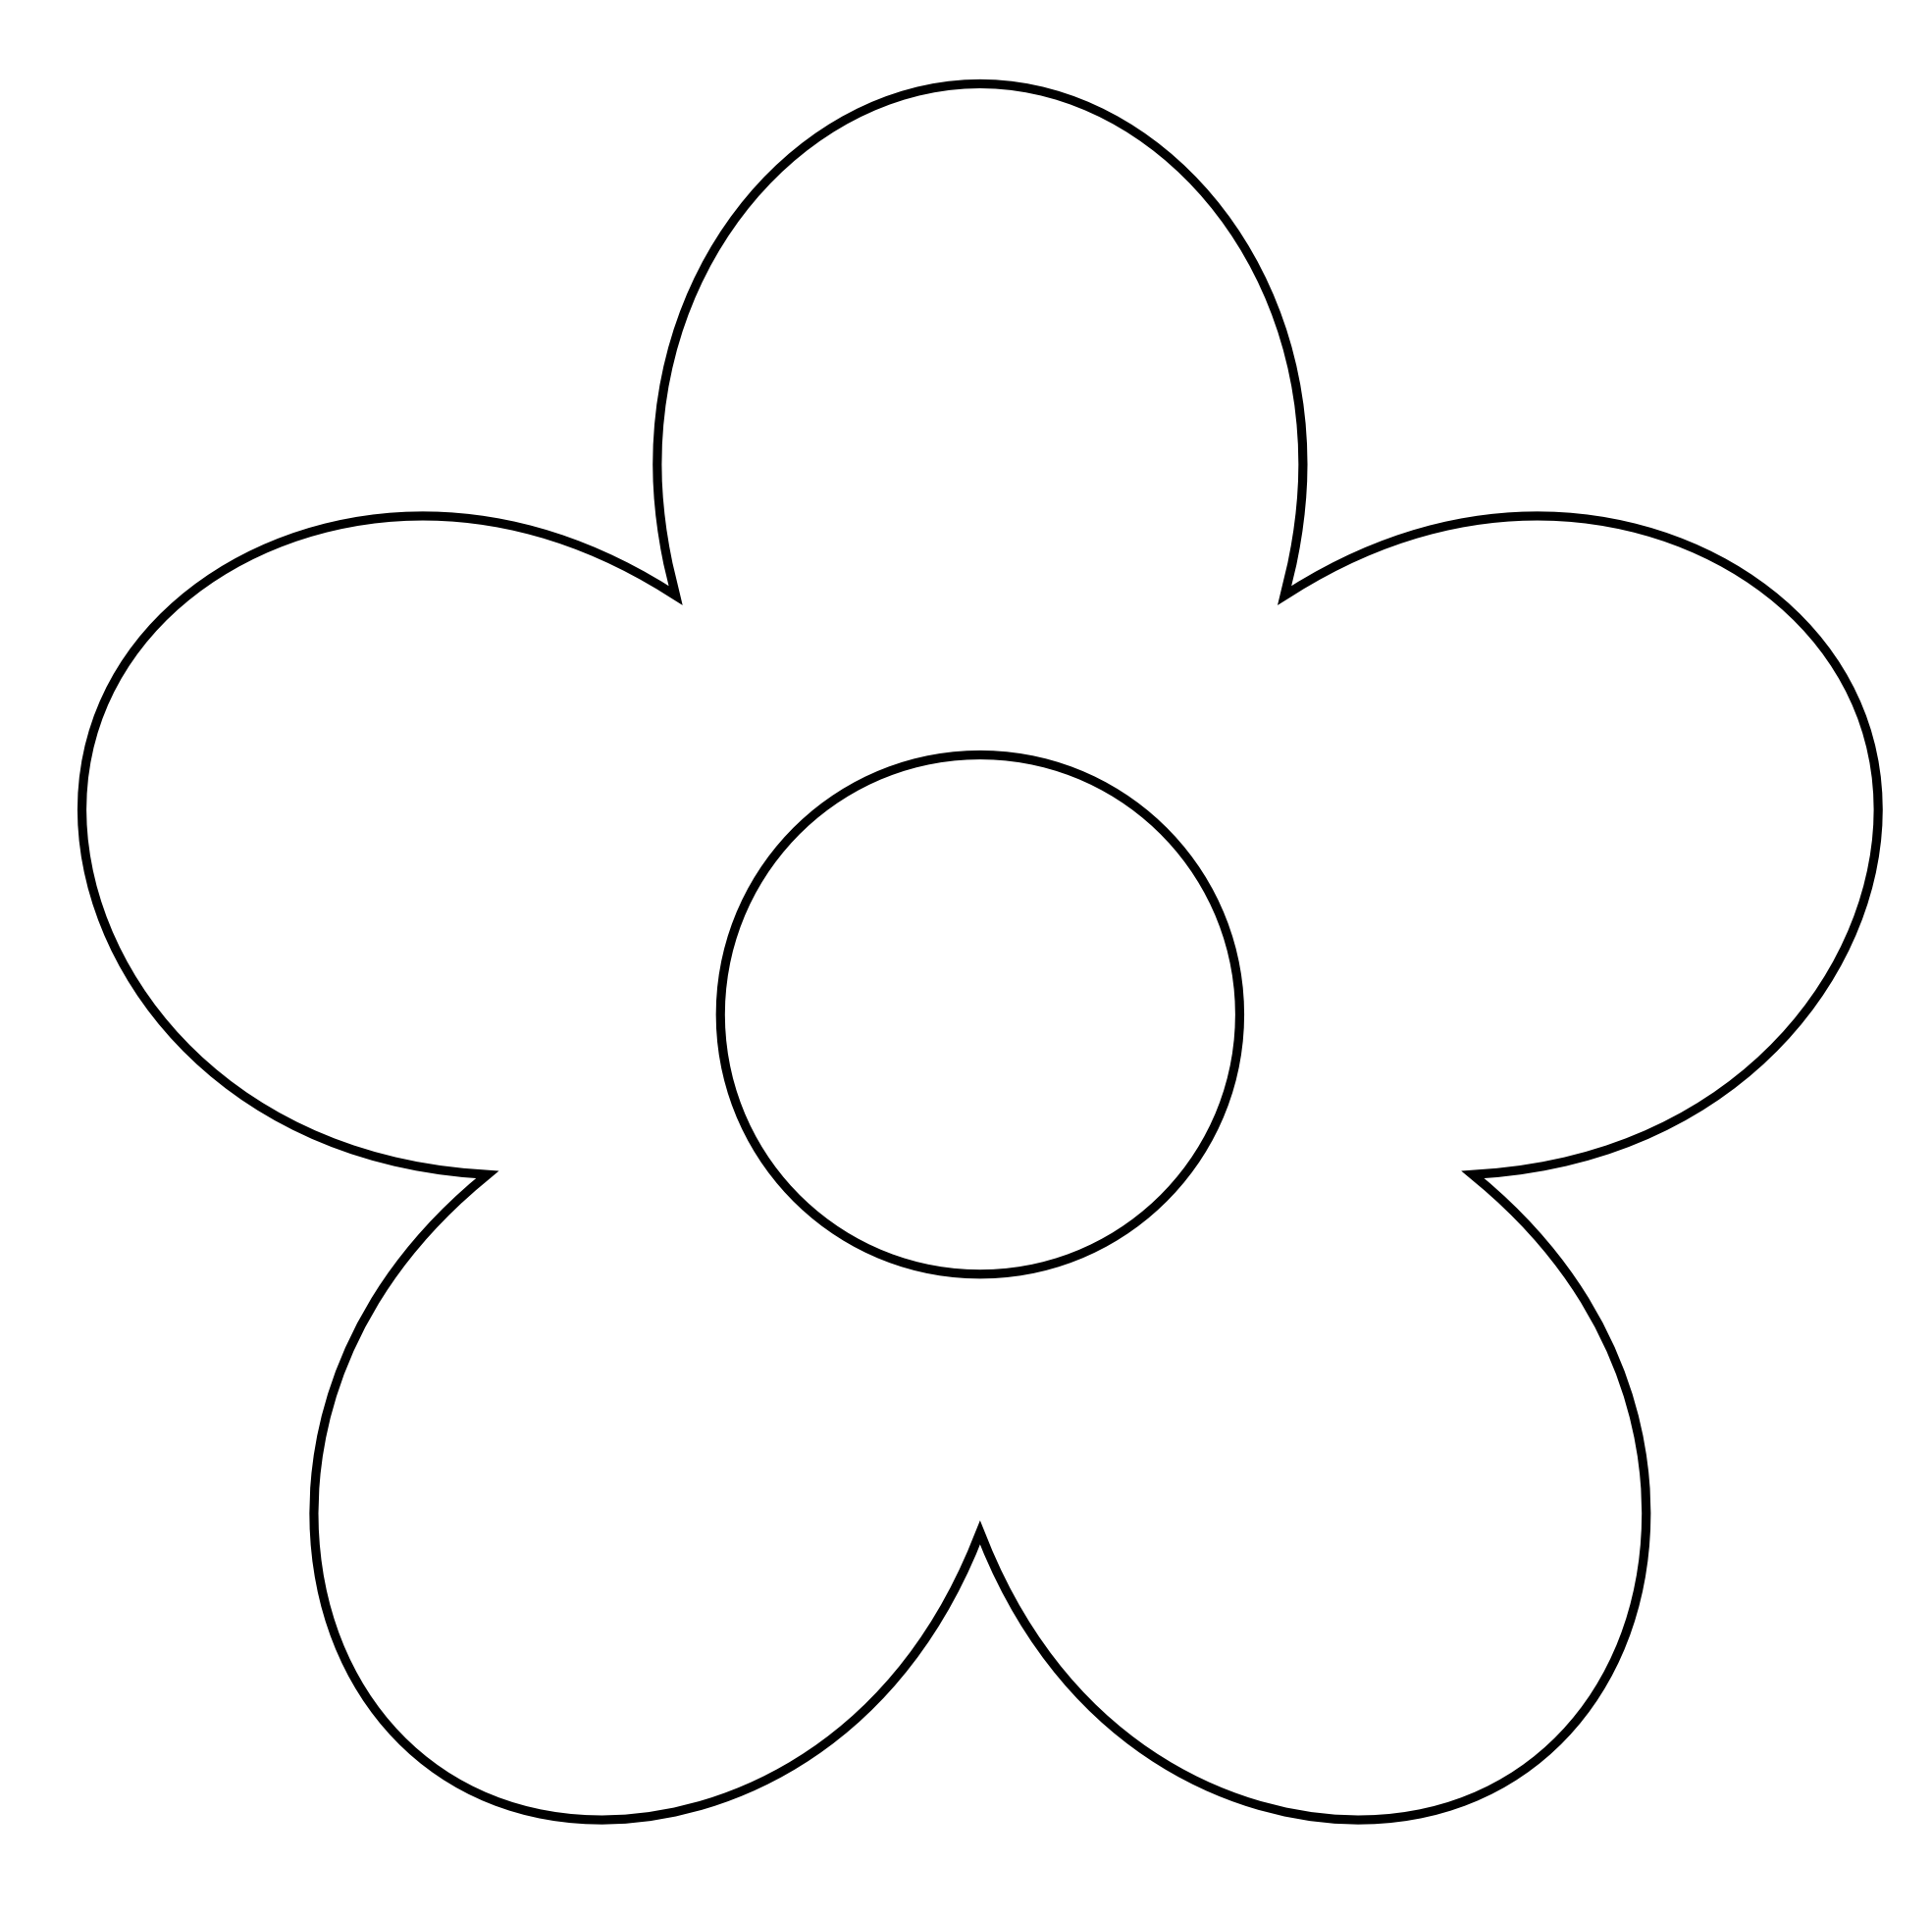 Basic Flower Line Drawing : Simple flower clipart black and white panda